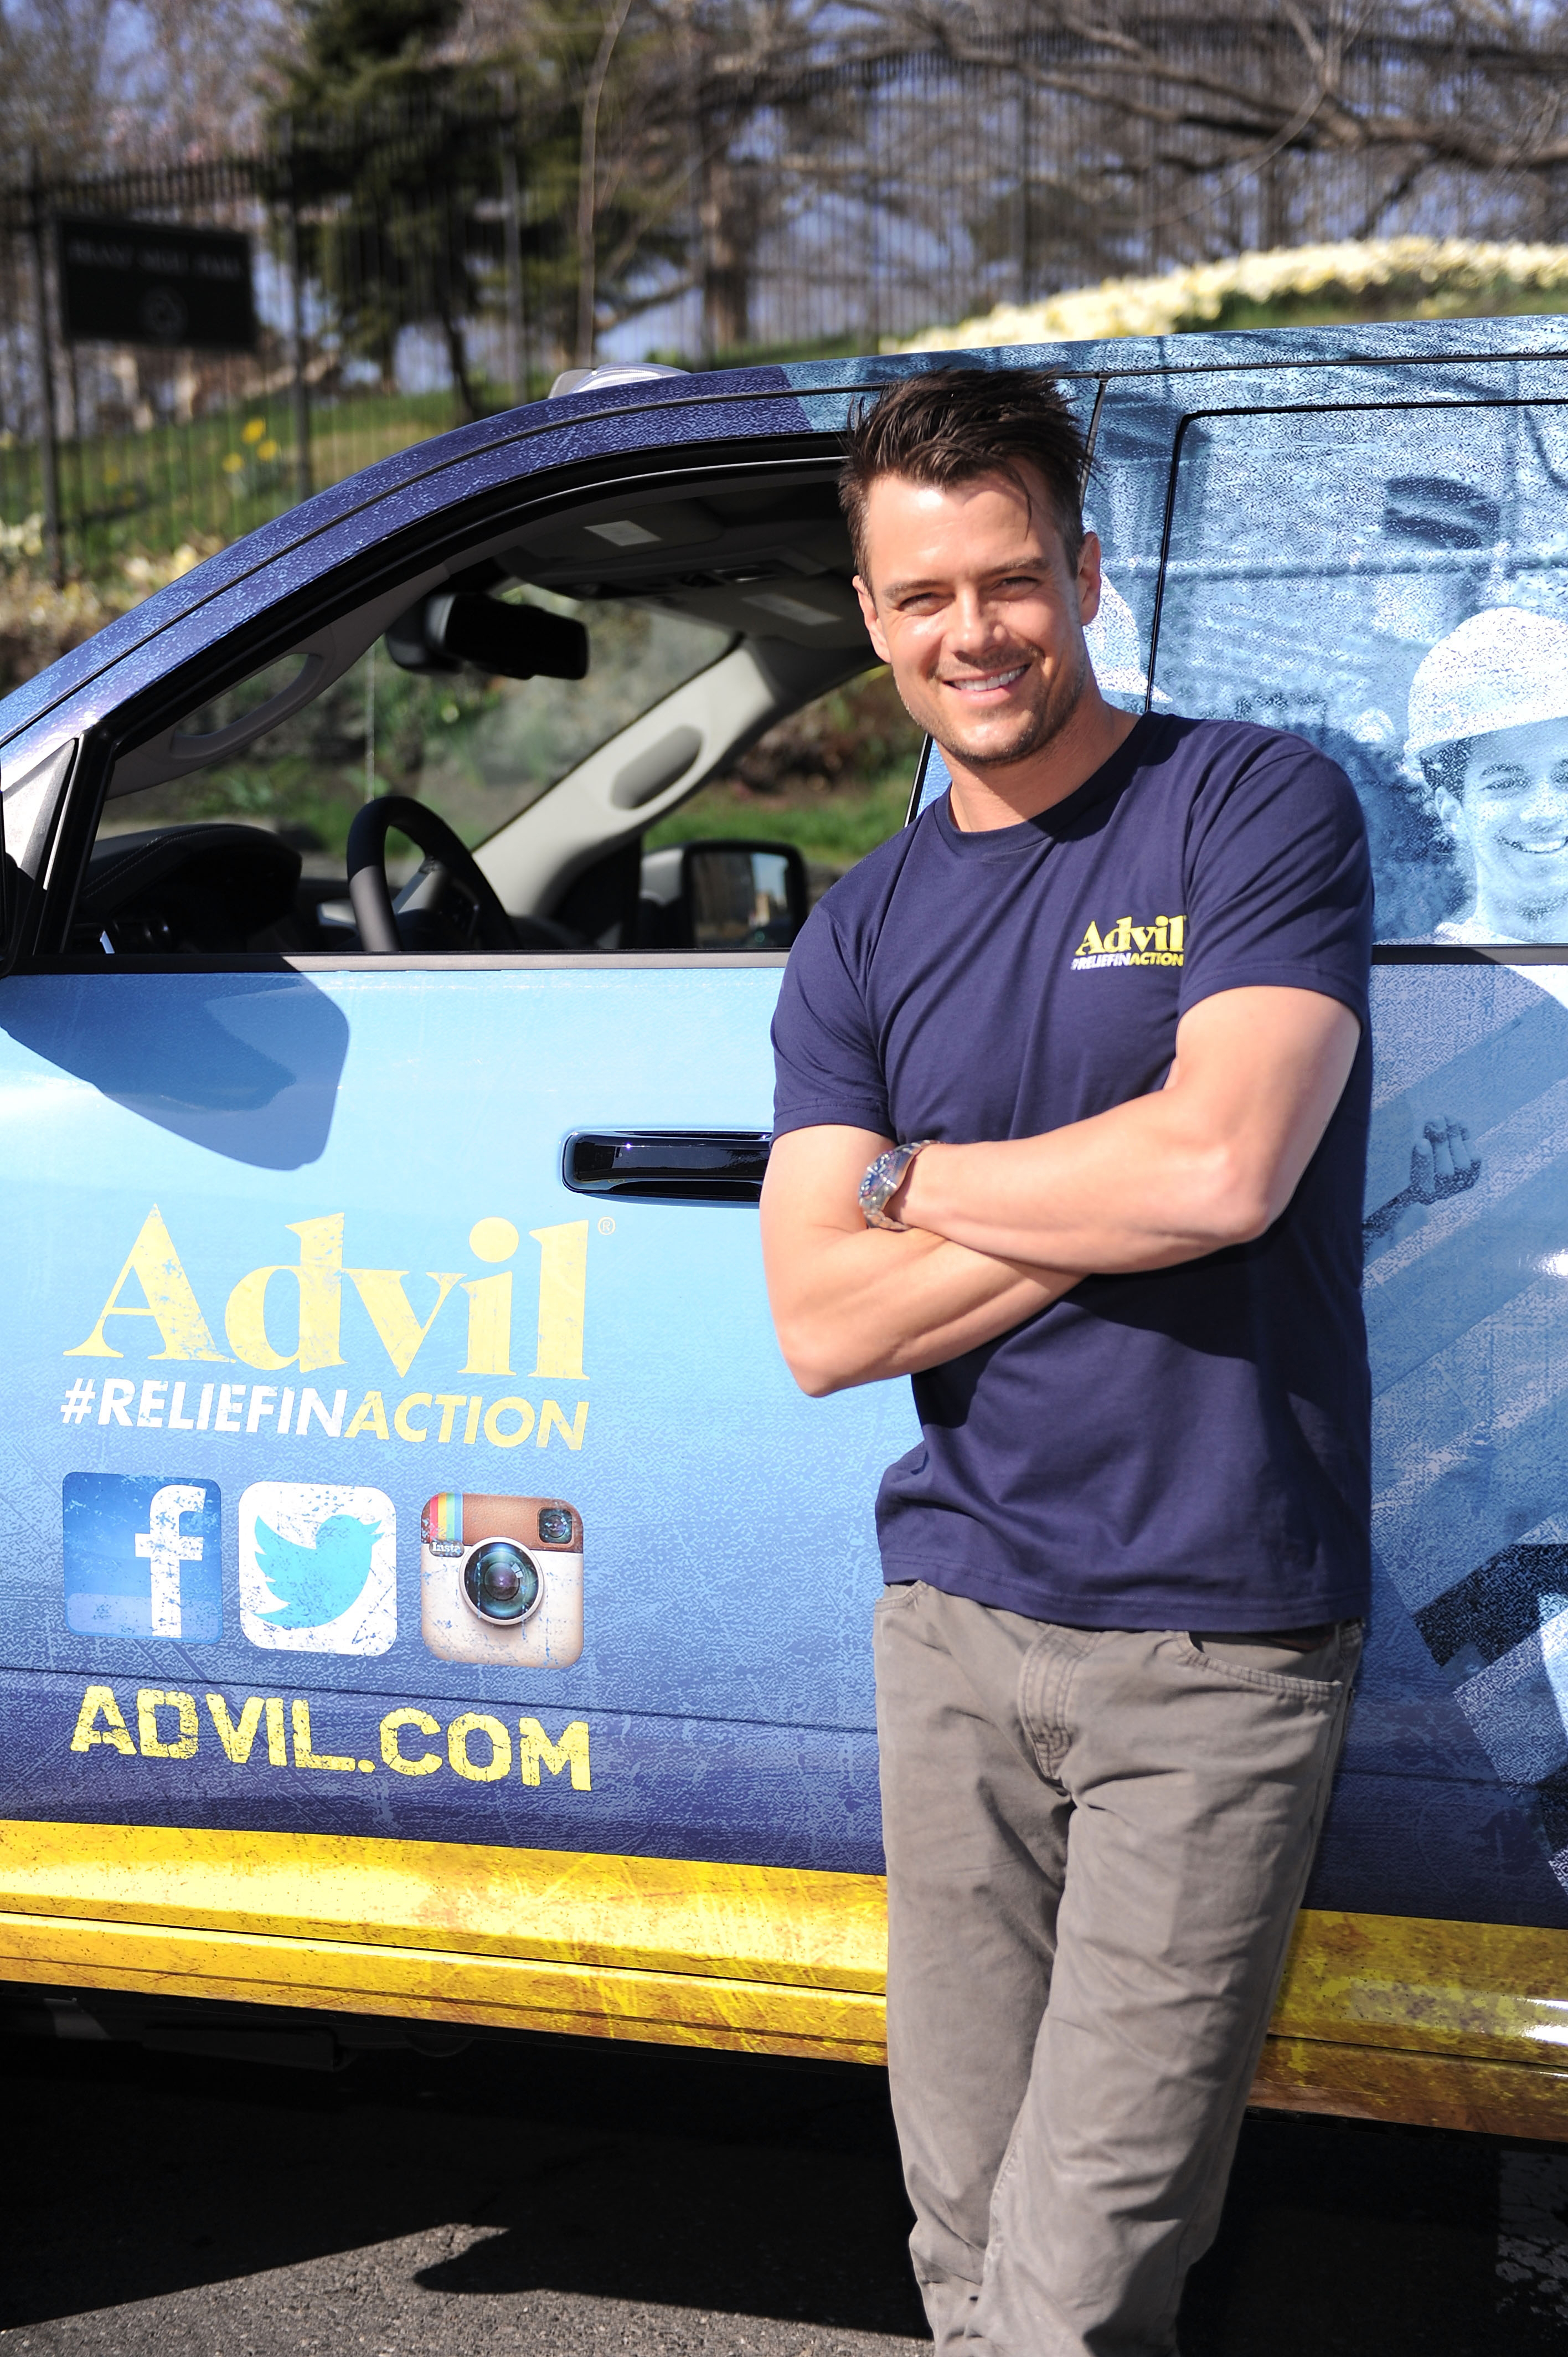 Actor and active volunteer Josh Duhamel helped the Advil(R) Relief in Action campaign unveil the new Advil(R) Mobile Relief Center (MRC) in the Bronx, NY, on Saturday, April 12. The MRC will make approximately 100 stops at volunteer events across the country, providing relief to volunteers who don't let pain hold them back from providing relief to their communities. (Photo: Business Wire)